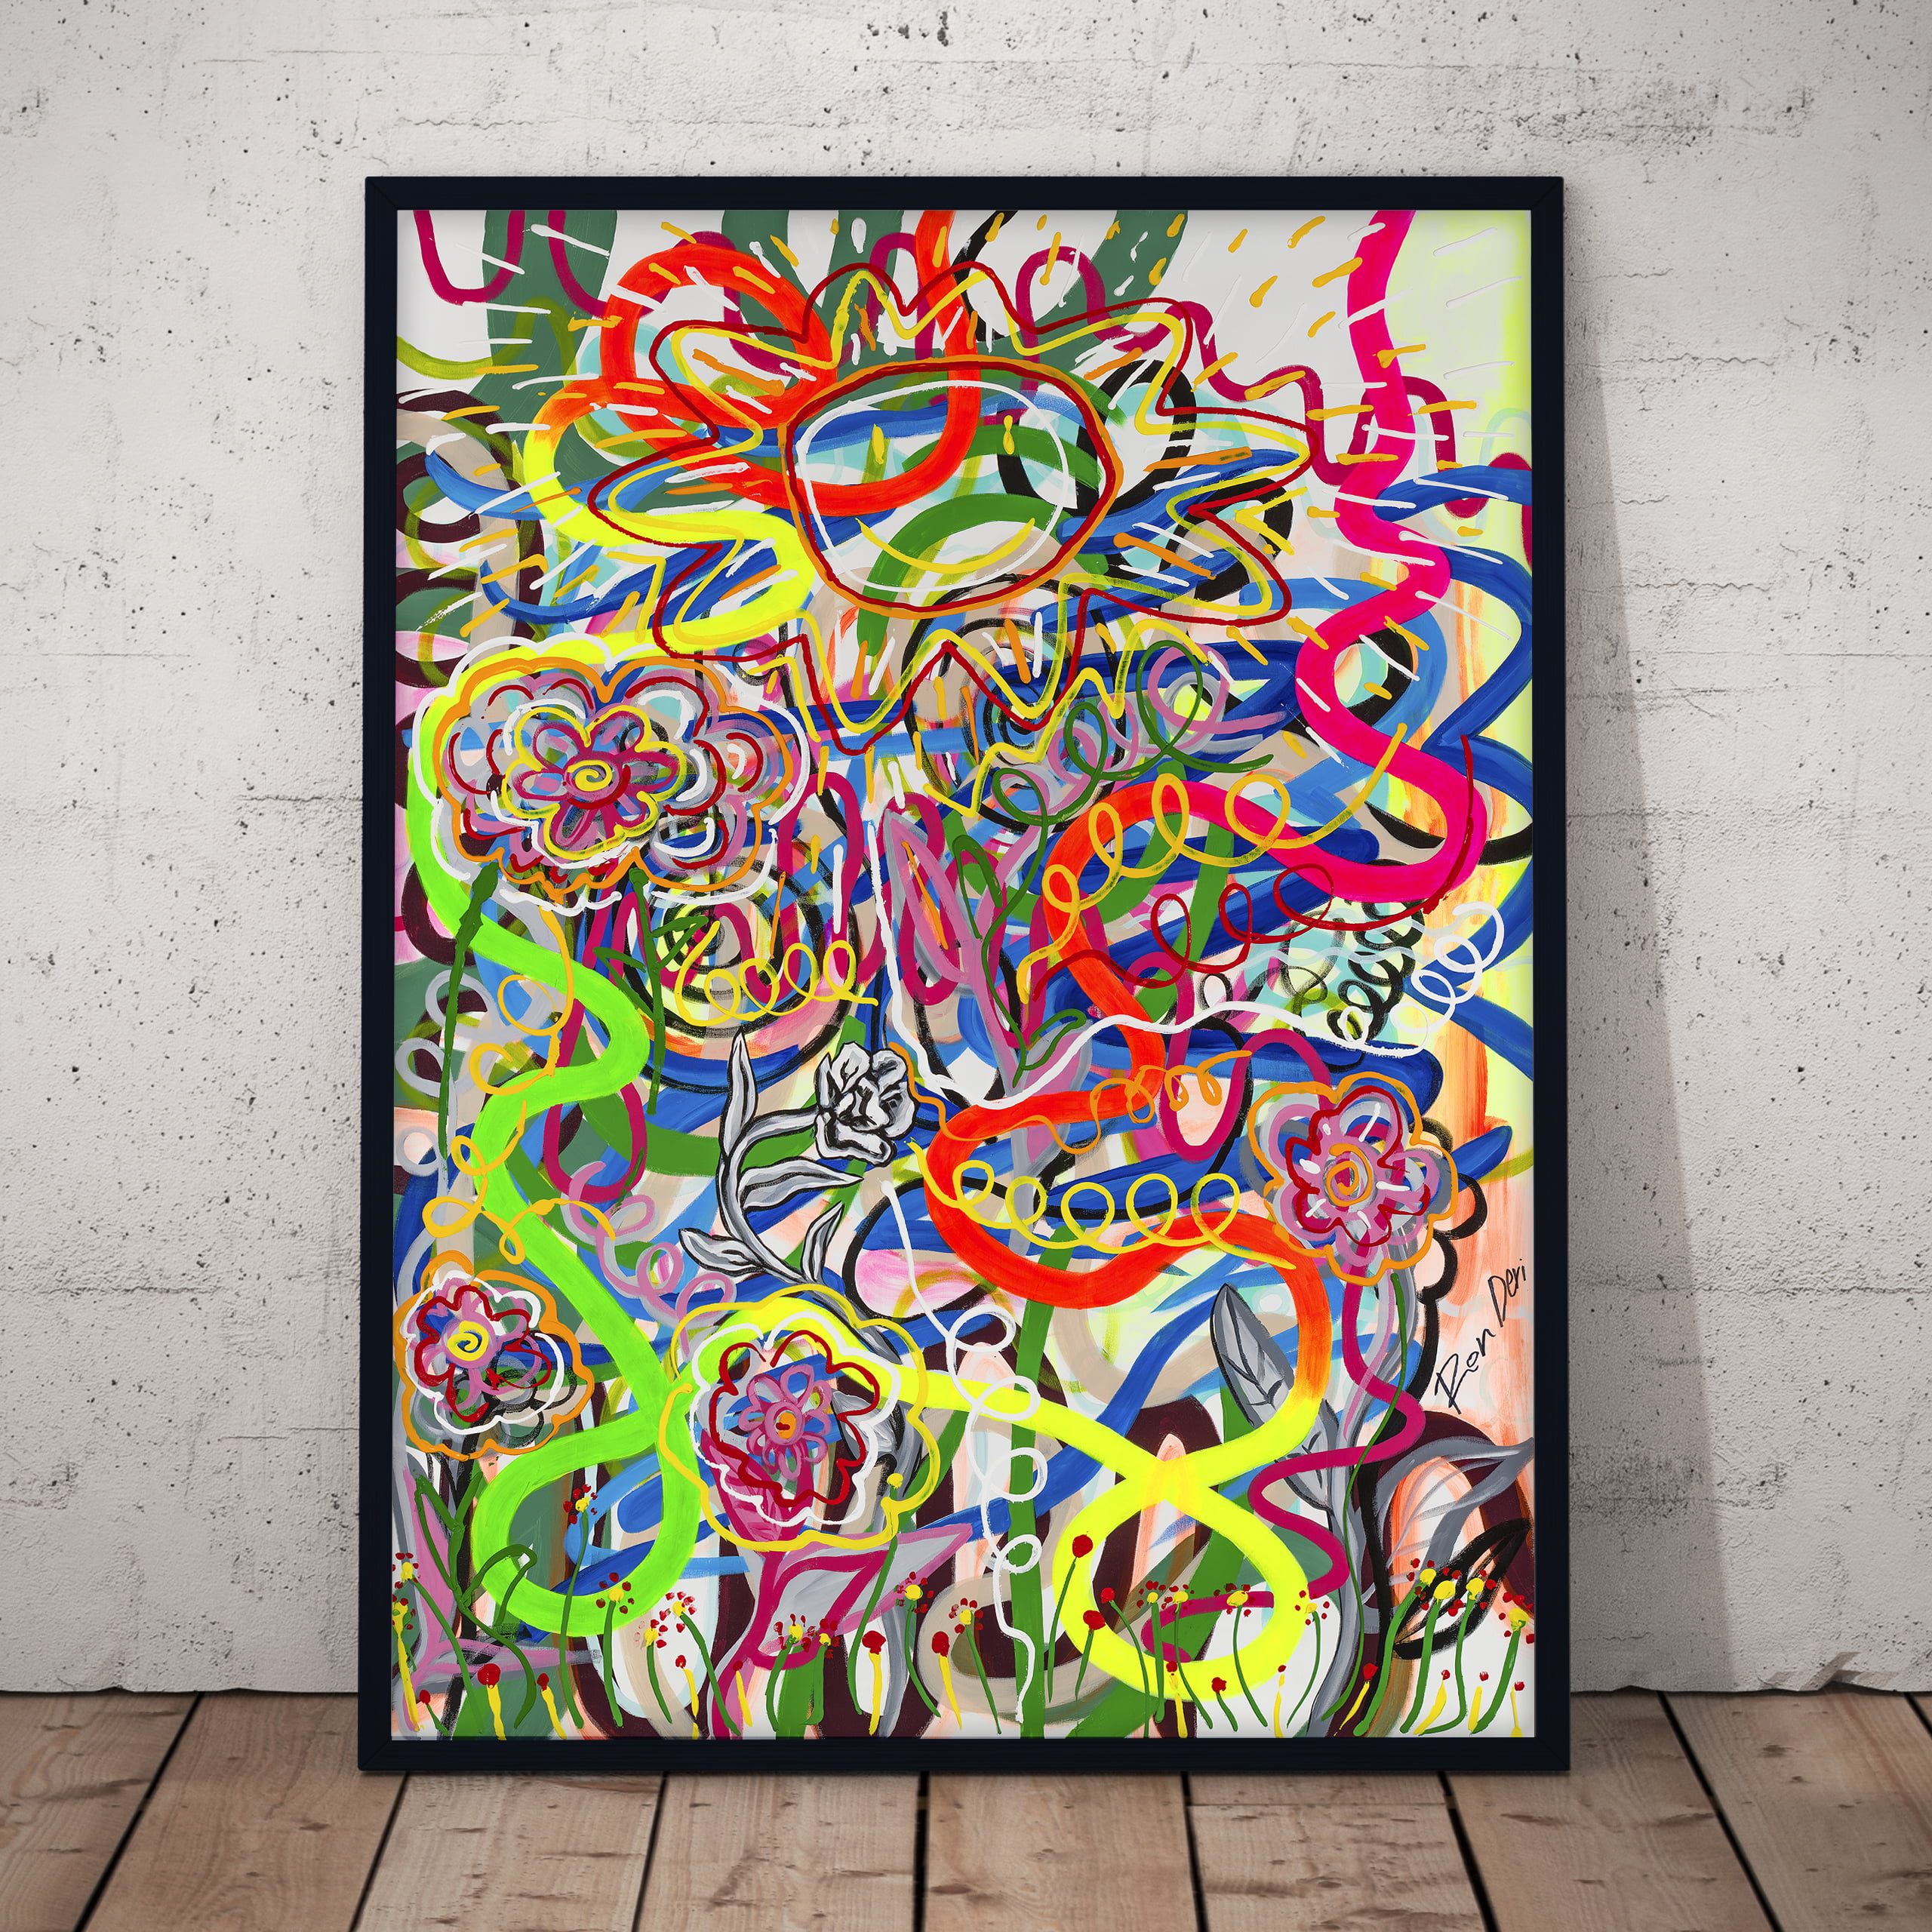 social-2-abstact-colorful-lines-wall-art-ron-deri-1